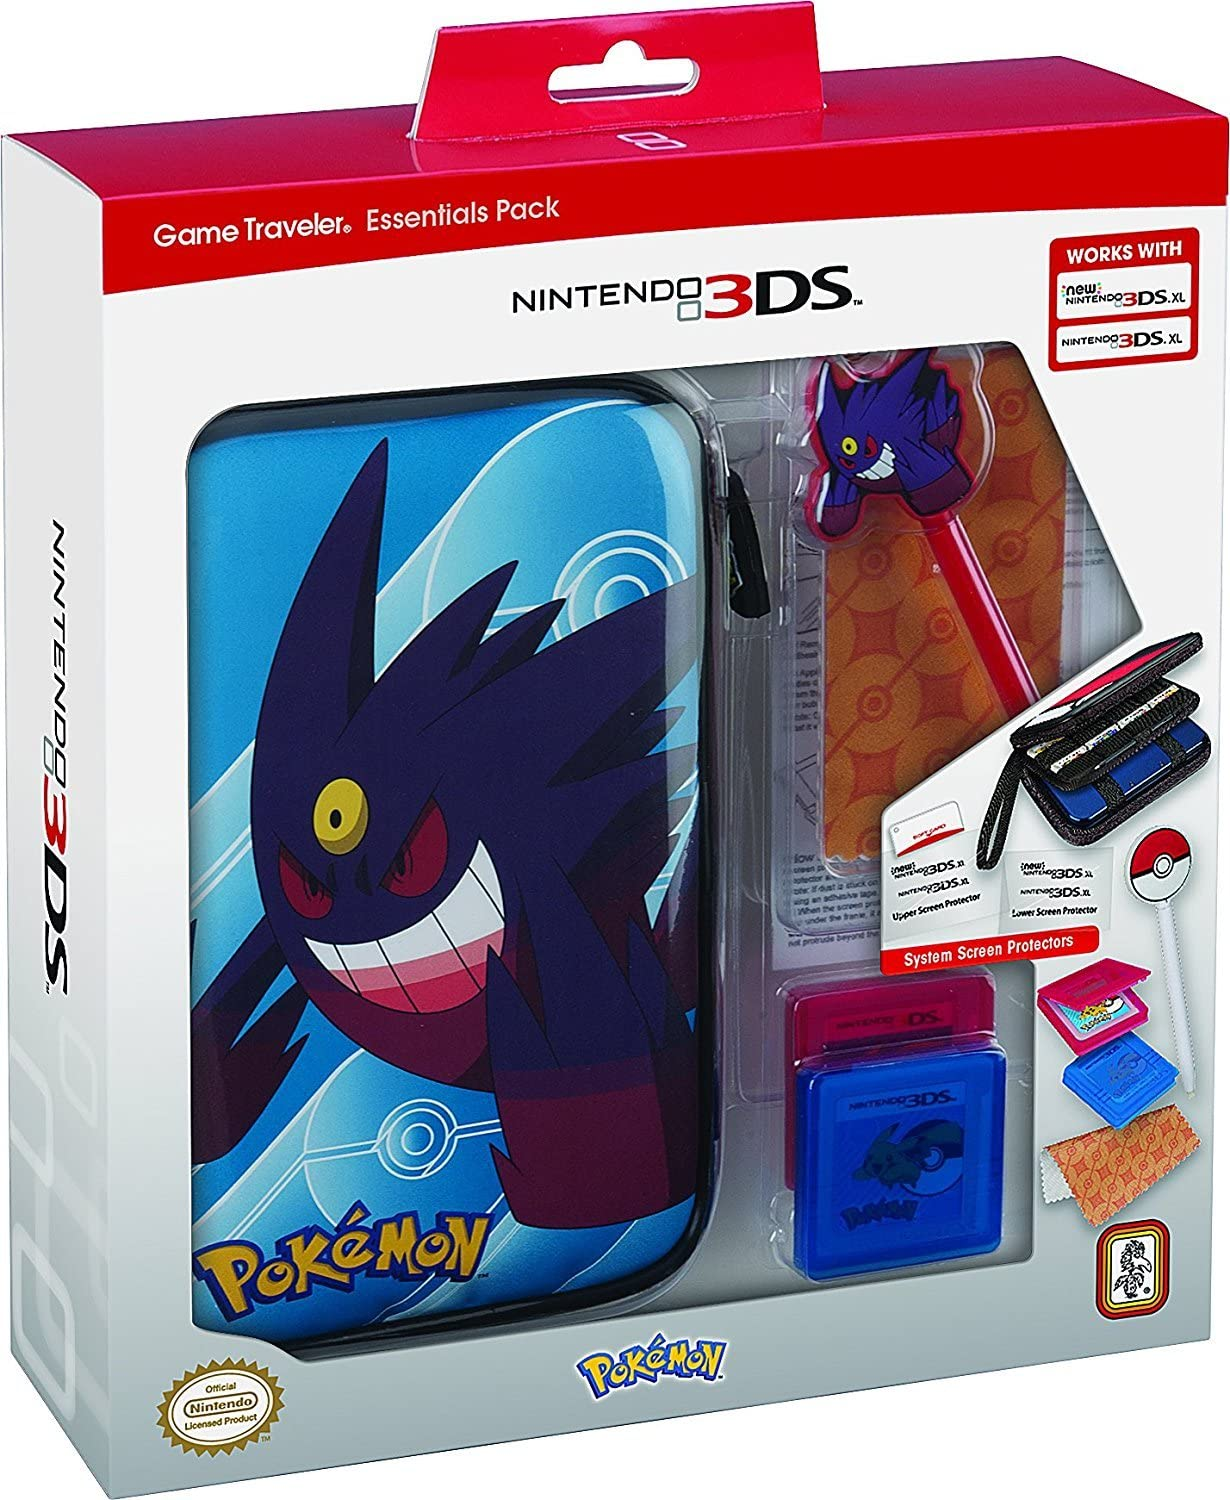 RDS Industries, Nintendo 3DS Game Traveler Essentials Pack - Blue with Mega Gengar by RDS Industries, Inc: Amazon.es: Videojuegos